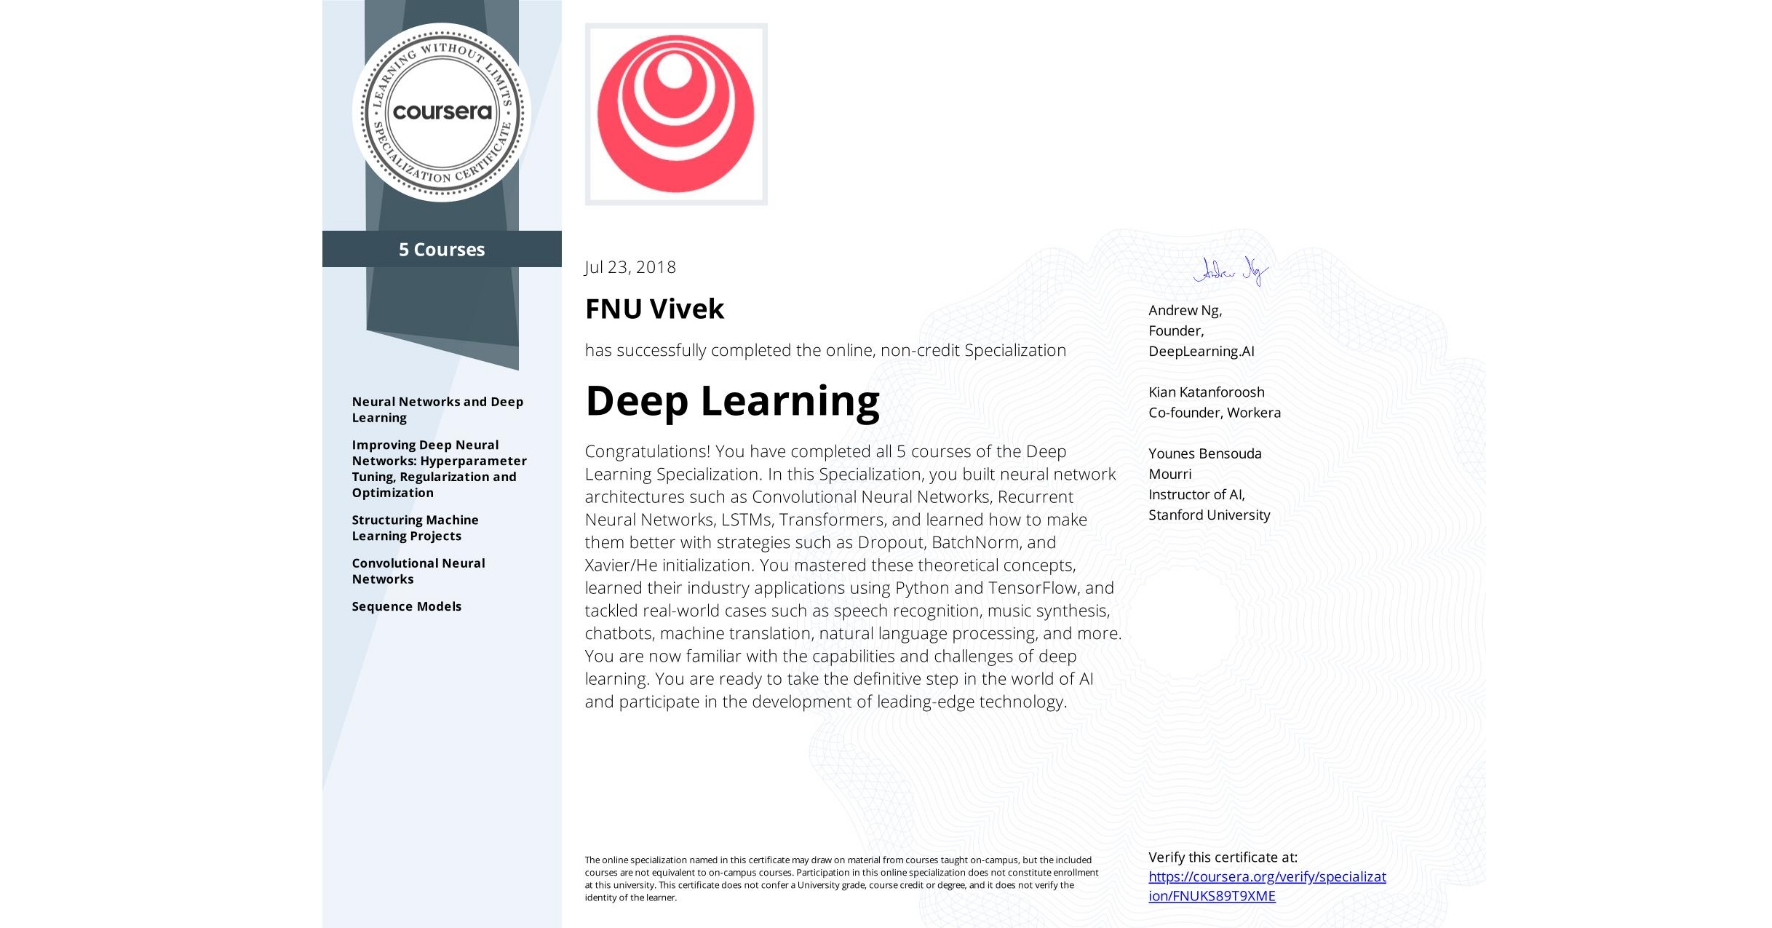 View certificate for FNU Vivek, Deep Learning, offered through Coursera. Congratulations! You have completed all 5 courses of the Deep Learning Specialization.  In this Specialization, you built neural network architectures such as Convolutional Neural Networks, Recurrent Neural Networks, LSTMs, Transformers, and learned how to make them better with strategies such as Dropout, BatchNorm, and Xavier/He initialization. You mastered these theoretical concepts, learned their industry applications using Python and TensorFlow, and tackled real-world cases such as speech recognition, music synthesis, chatbots, machine translation, natural language processing, and more.  You are now familiar with the capabilities and challenges of deep learning. You are ready to take the definitive step in the world of AI and participate in the development of leading-edge technology.